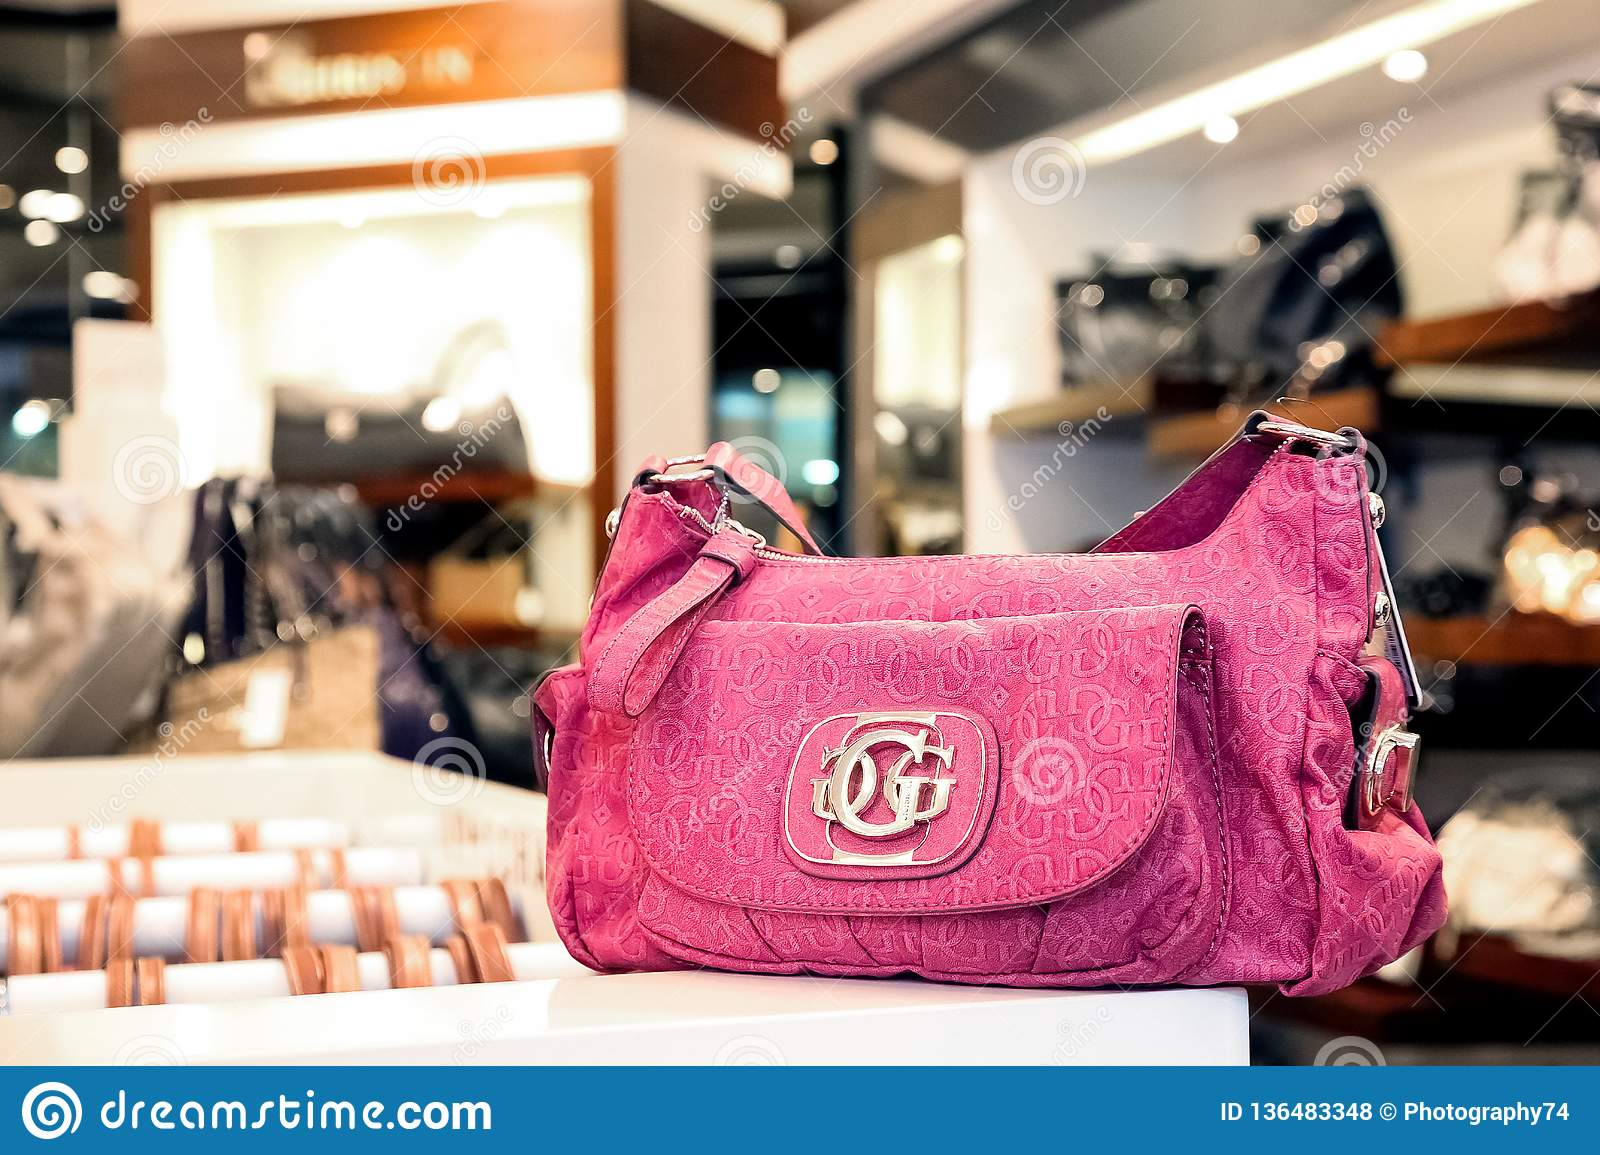 on wholesale run shoes brand new Handbags In An Up-Market Fashion Clothing Retail Store ...